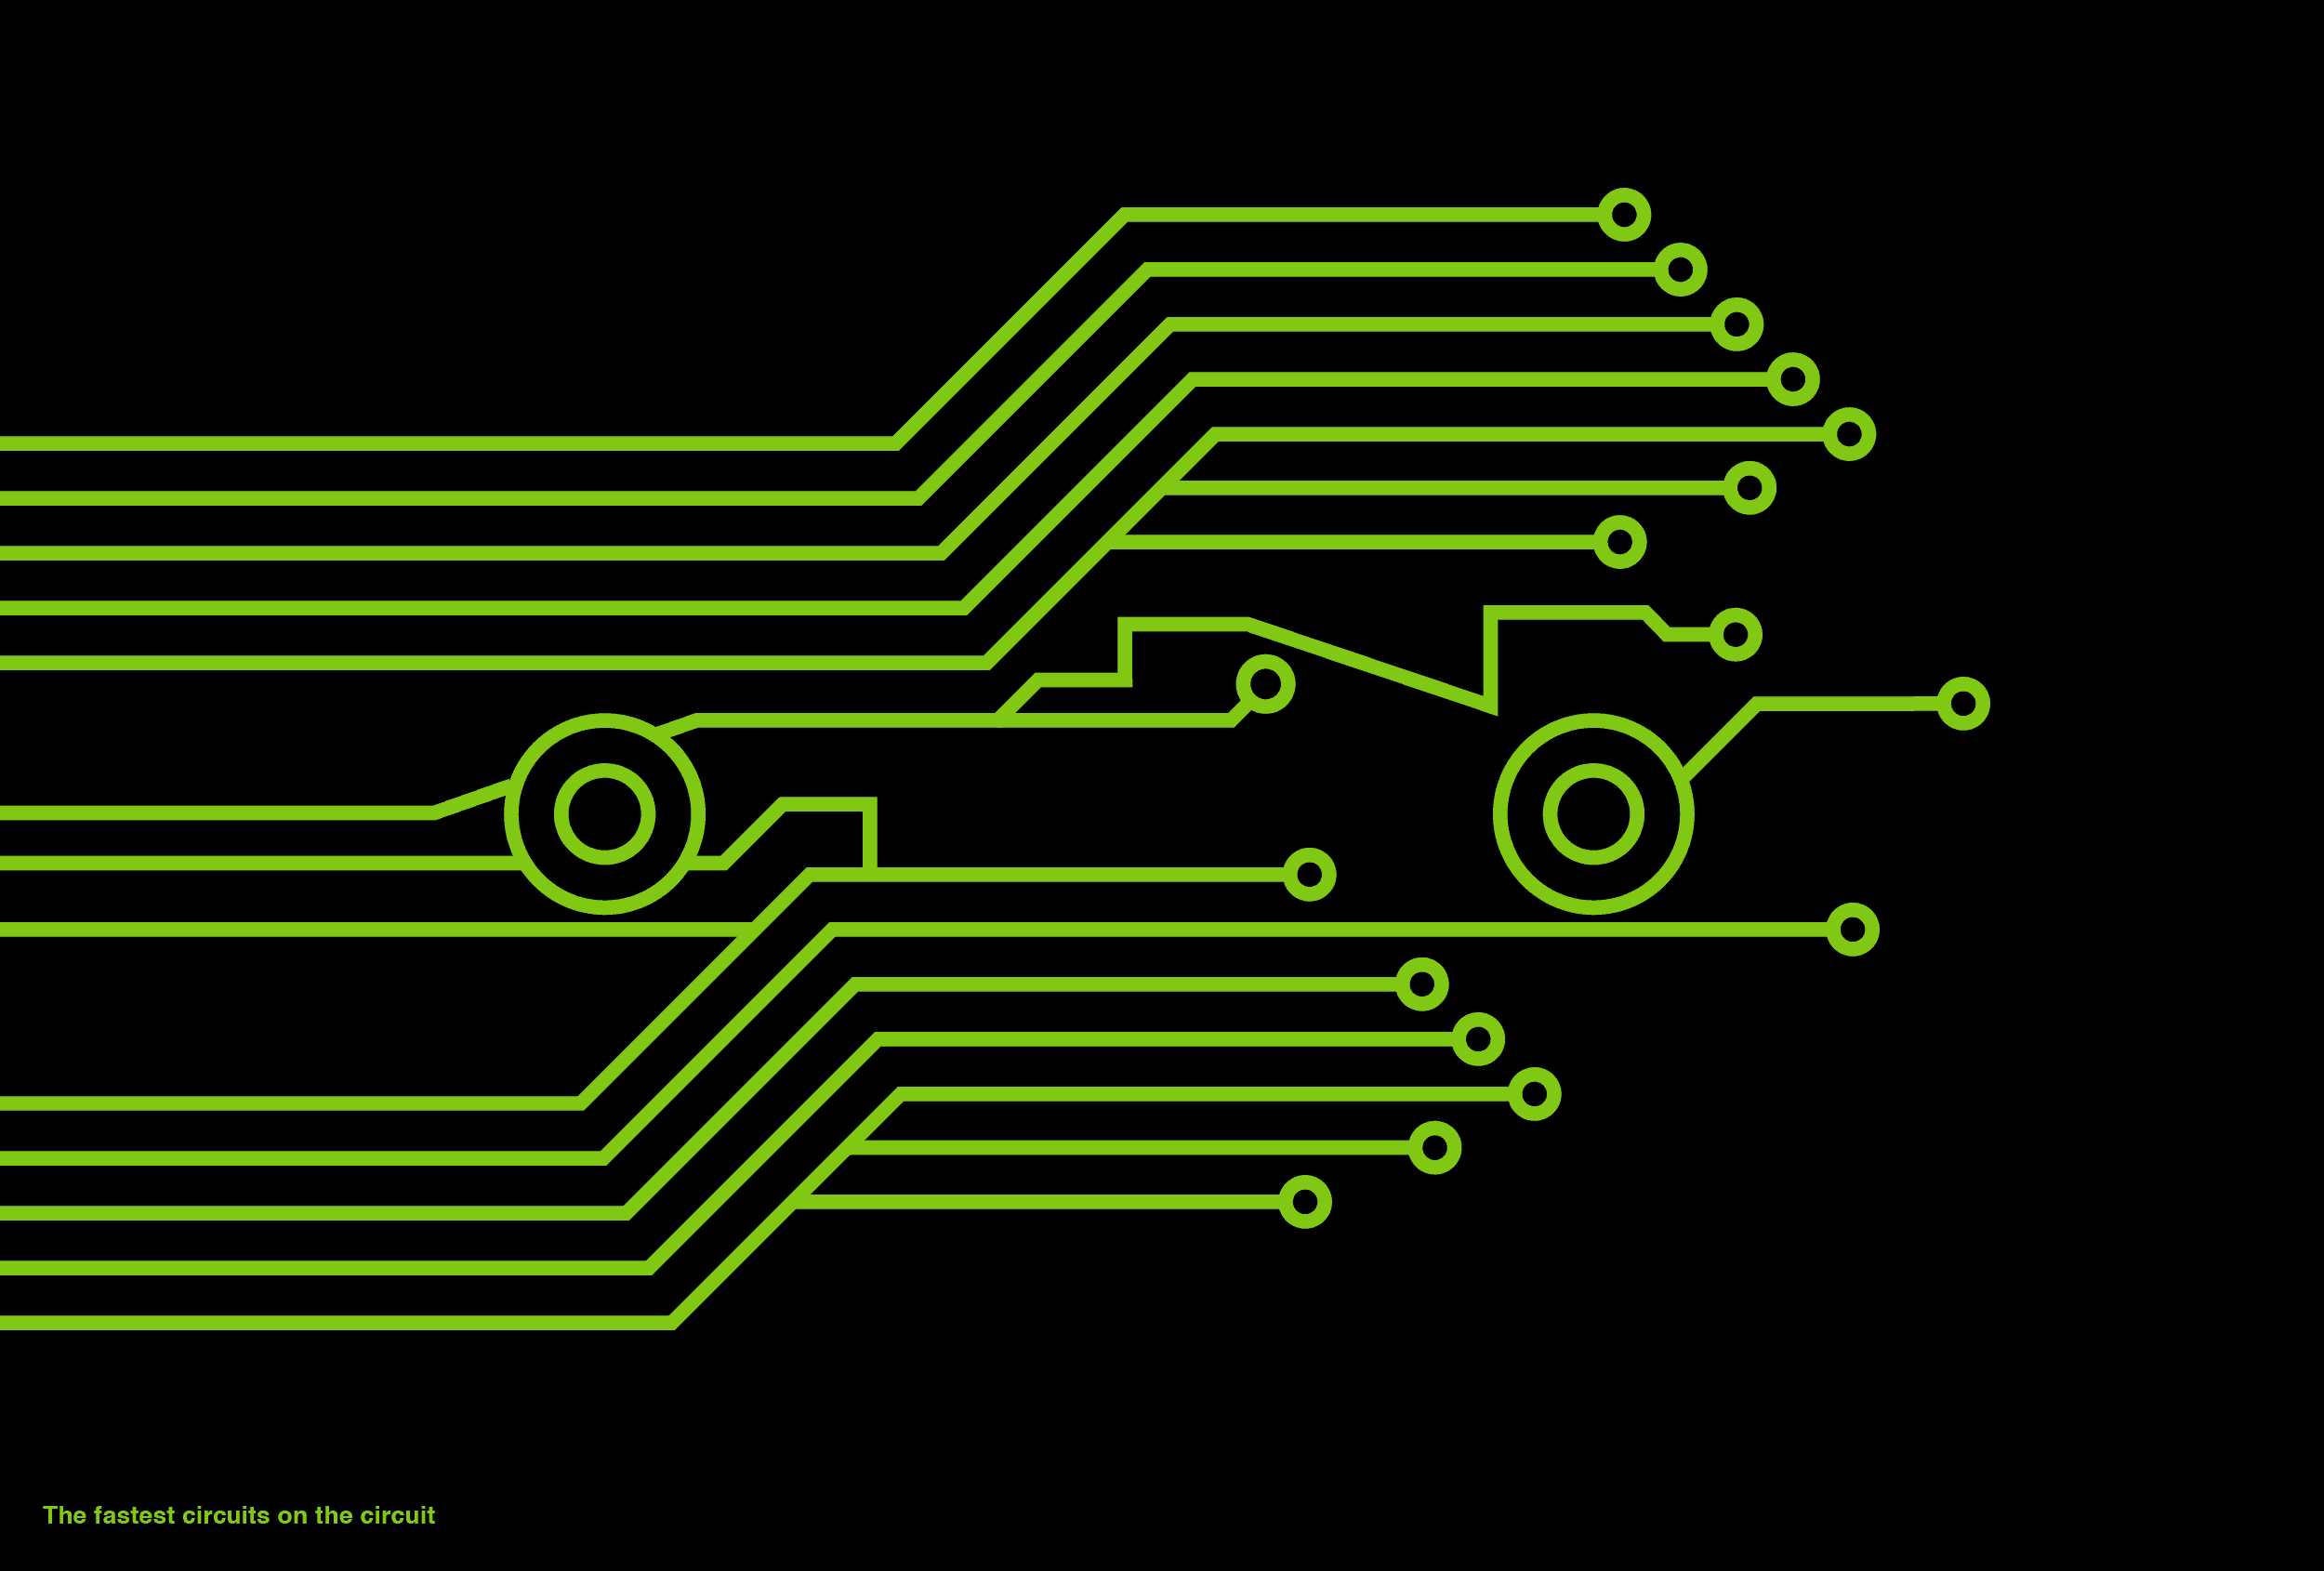 The fastest circuits on the circuit - expressing the electronics within Mercedes power units.